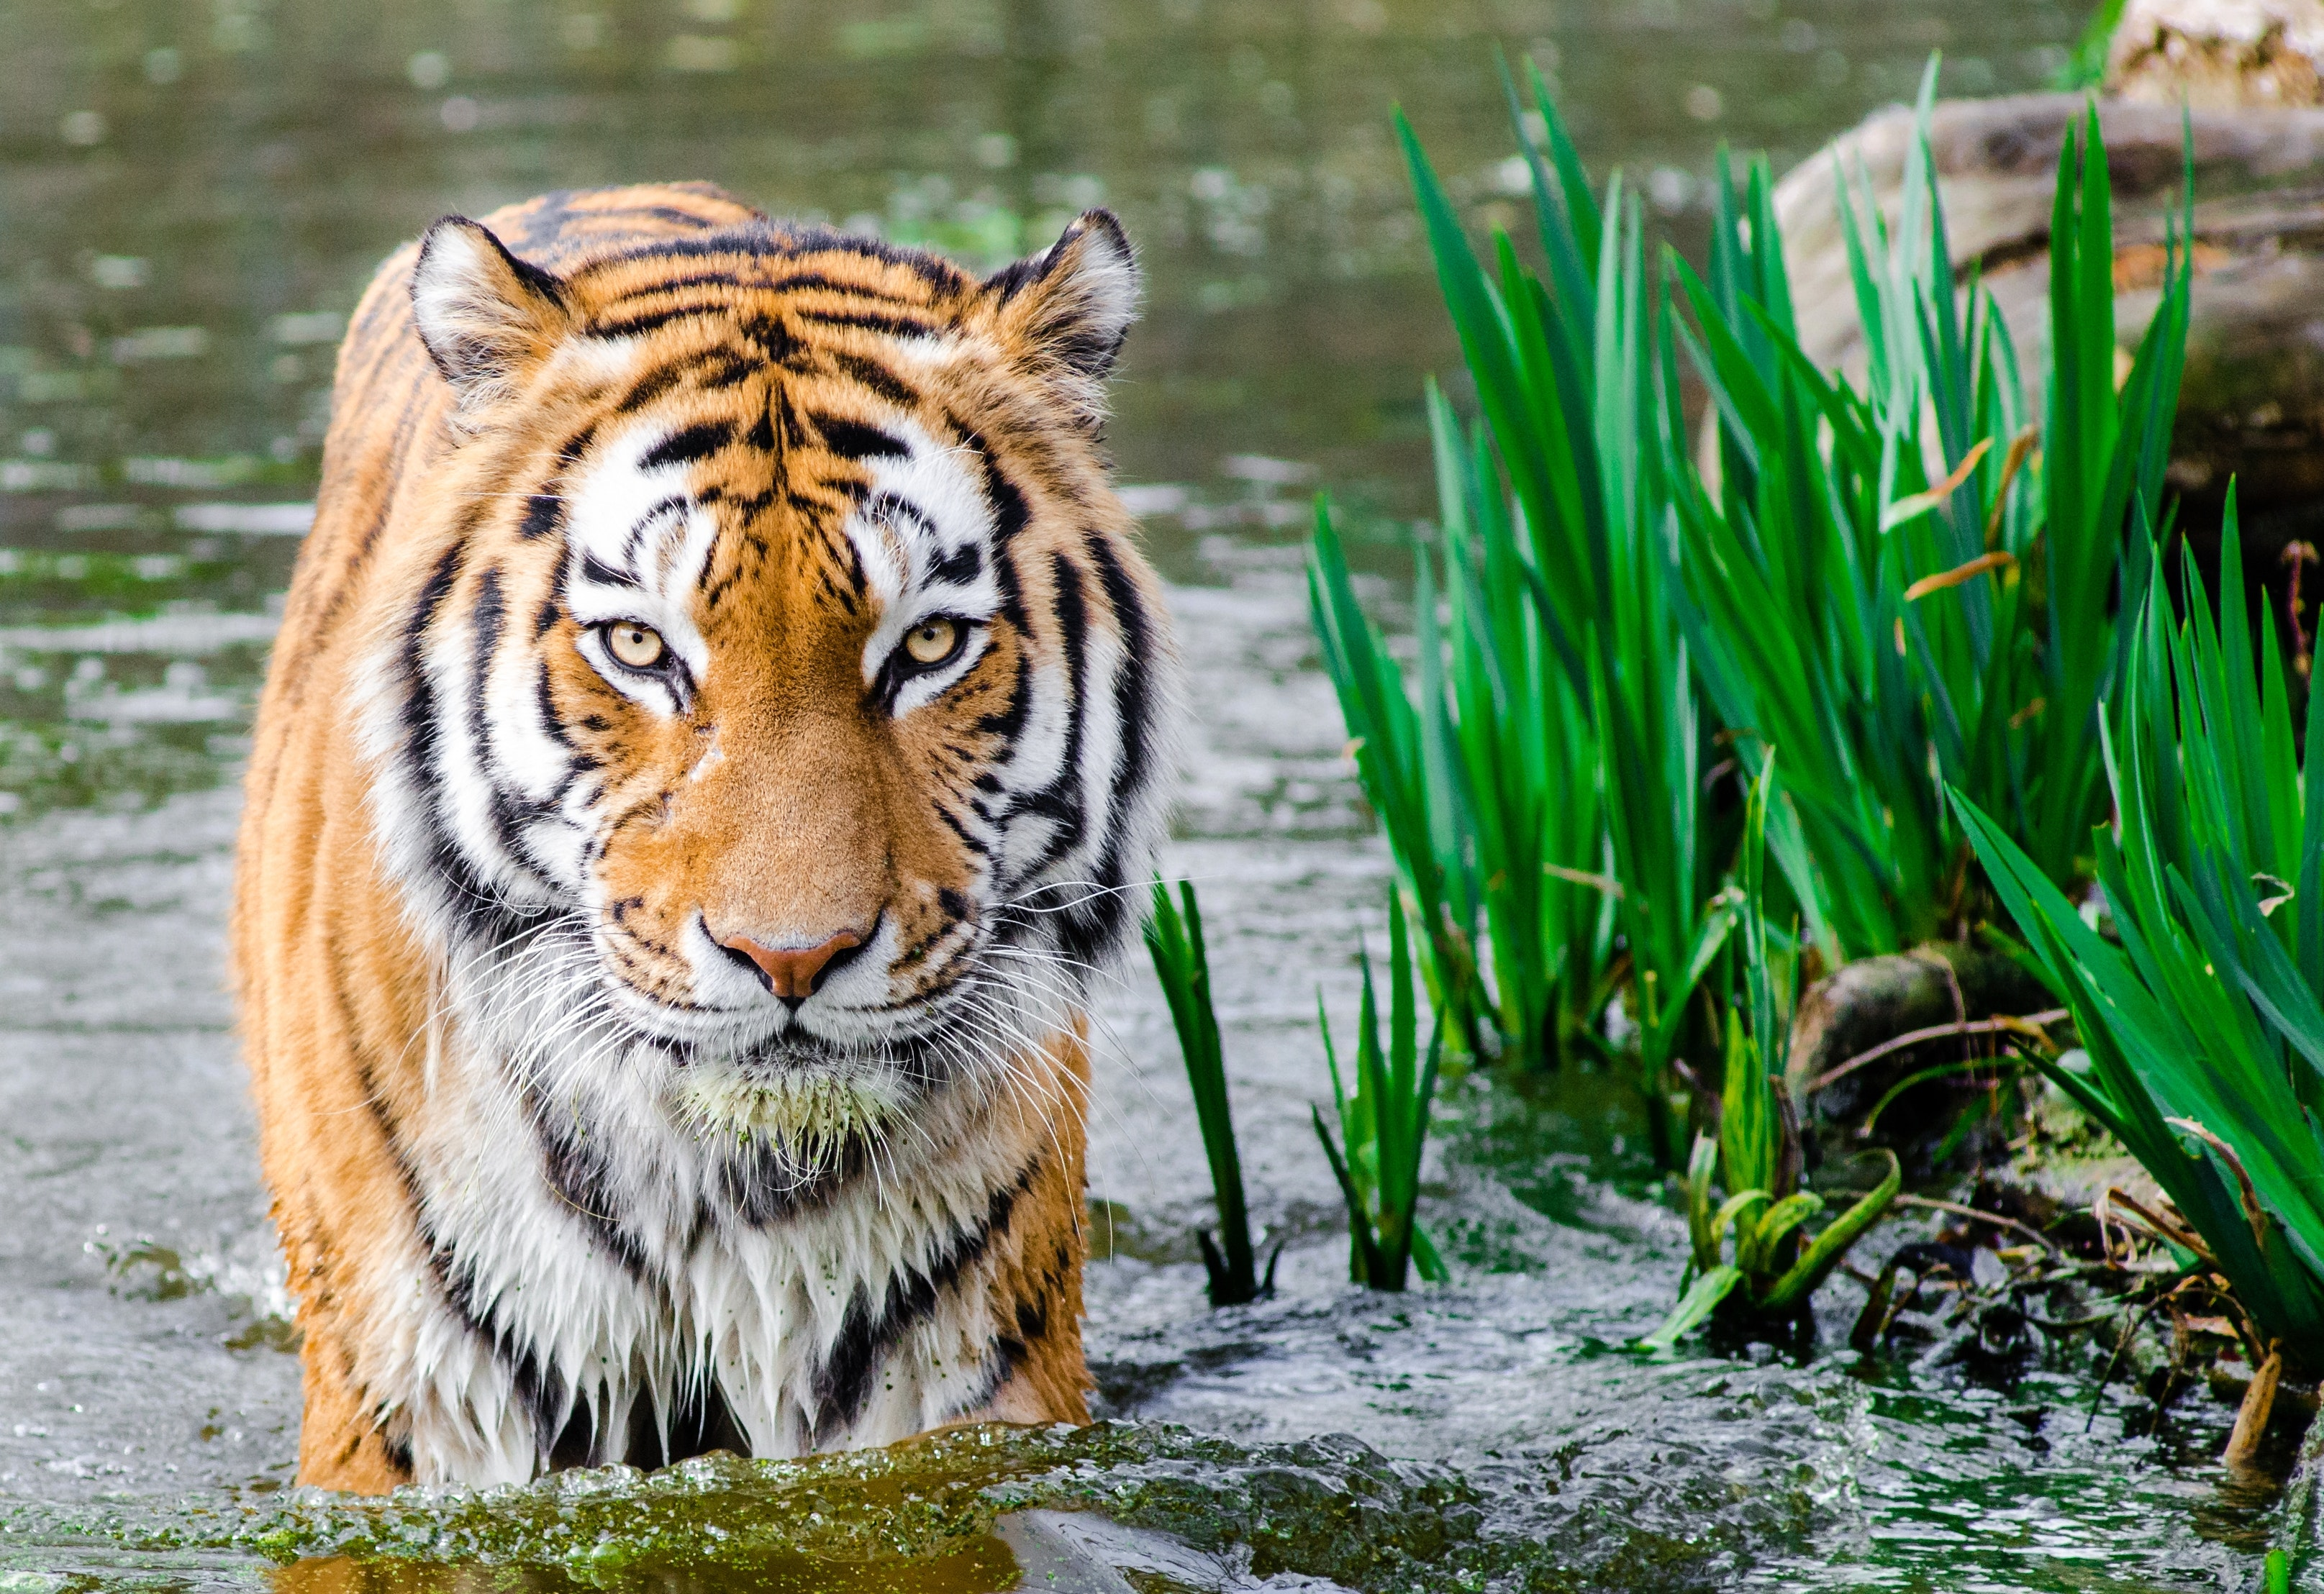 Animal stock images free Stock Images, Photos Vectors Royalty Free Pond5